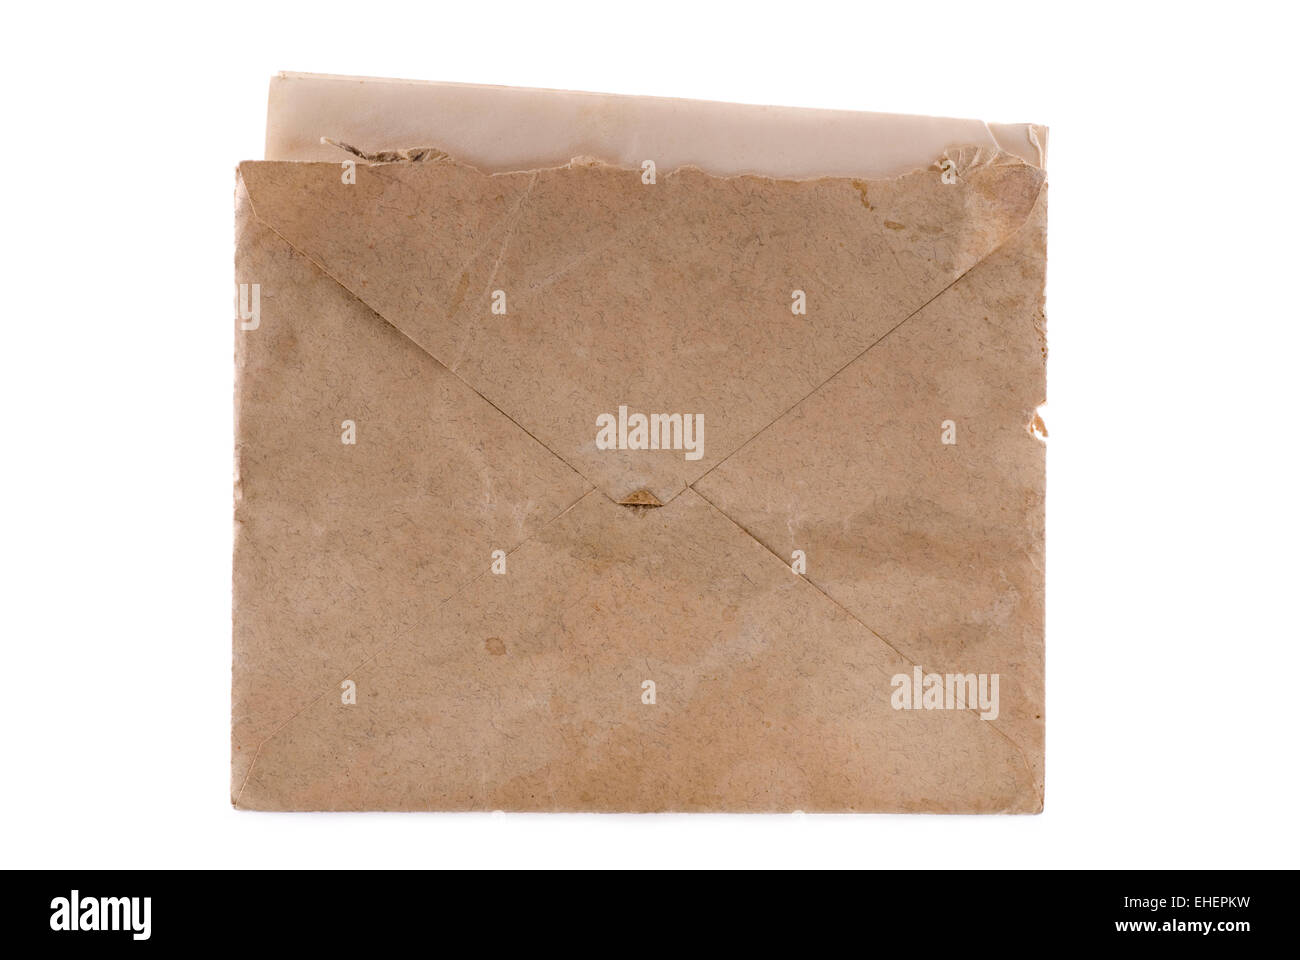 Old envelope with a letter inside. - Stock Image